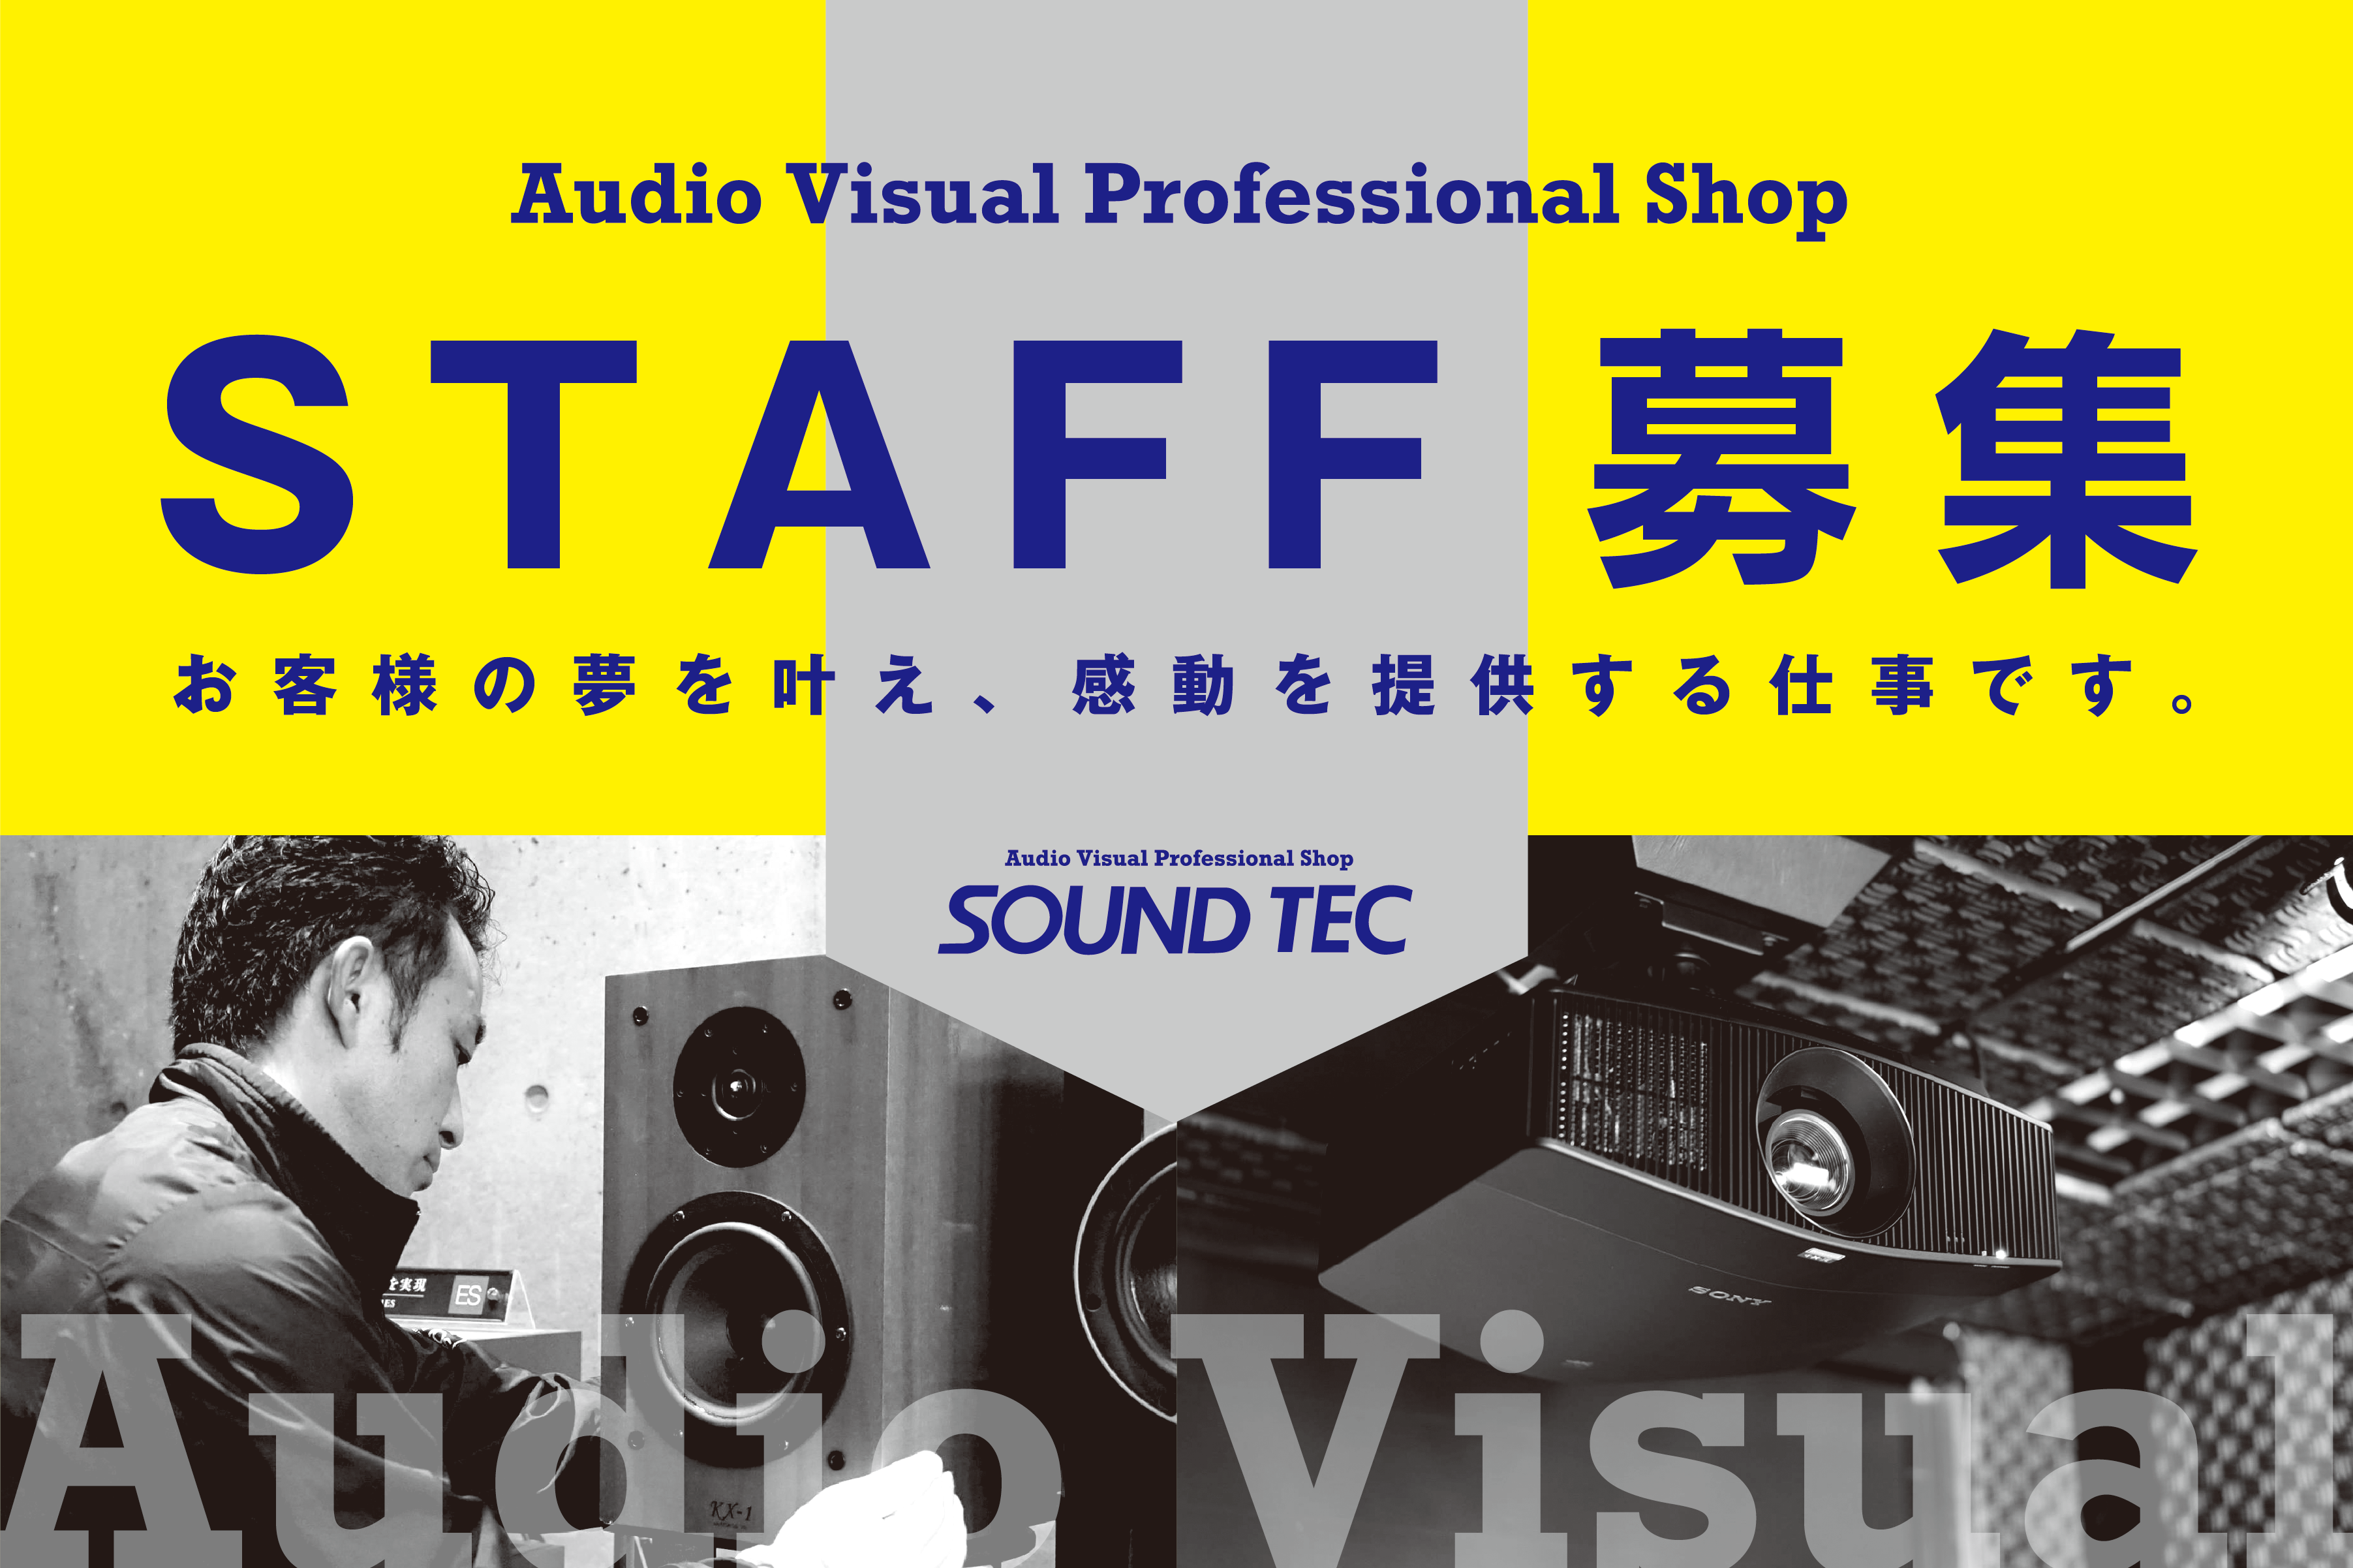 soundtec_staffwanted-02